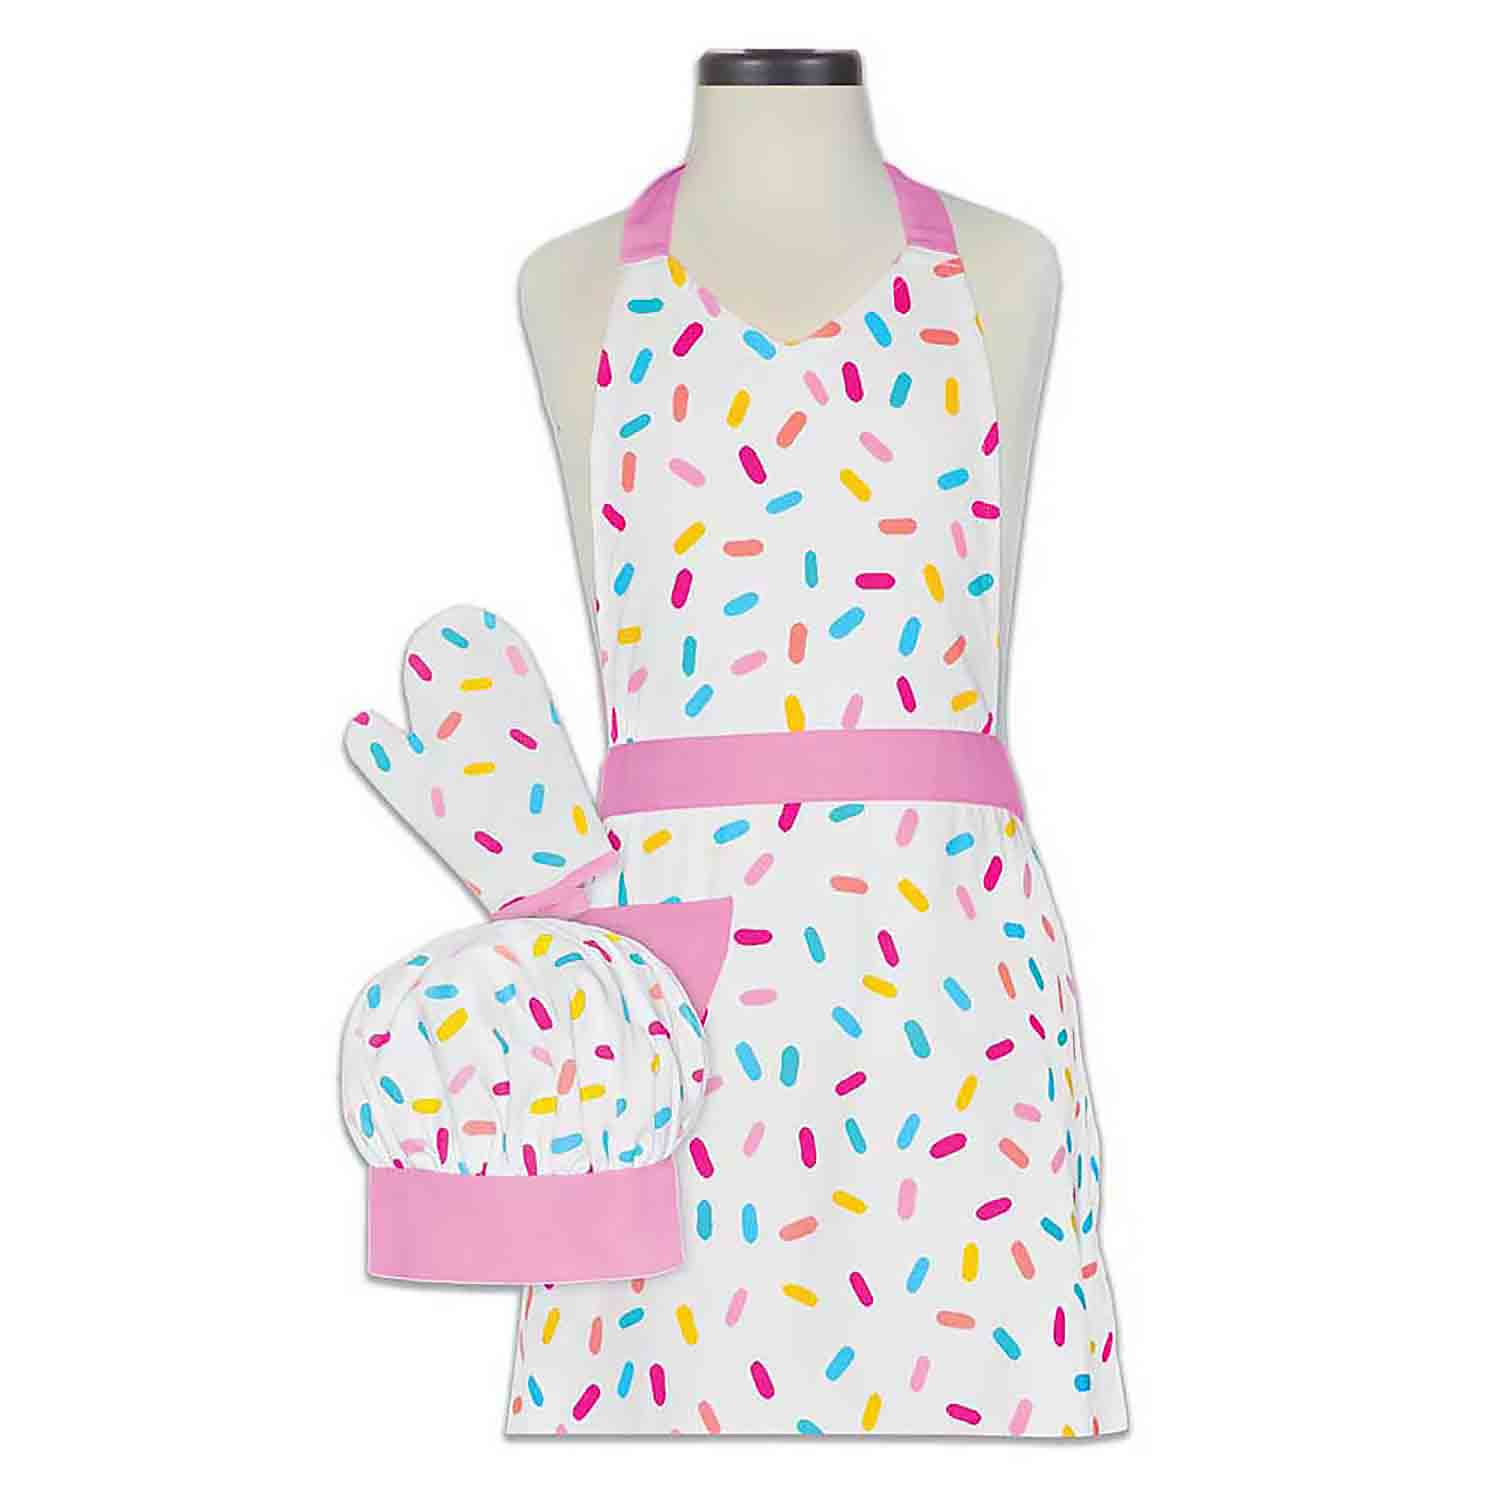 Sprinkles Kid's Apron Set